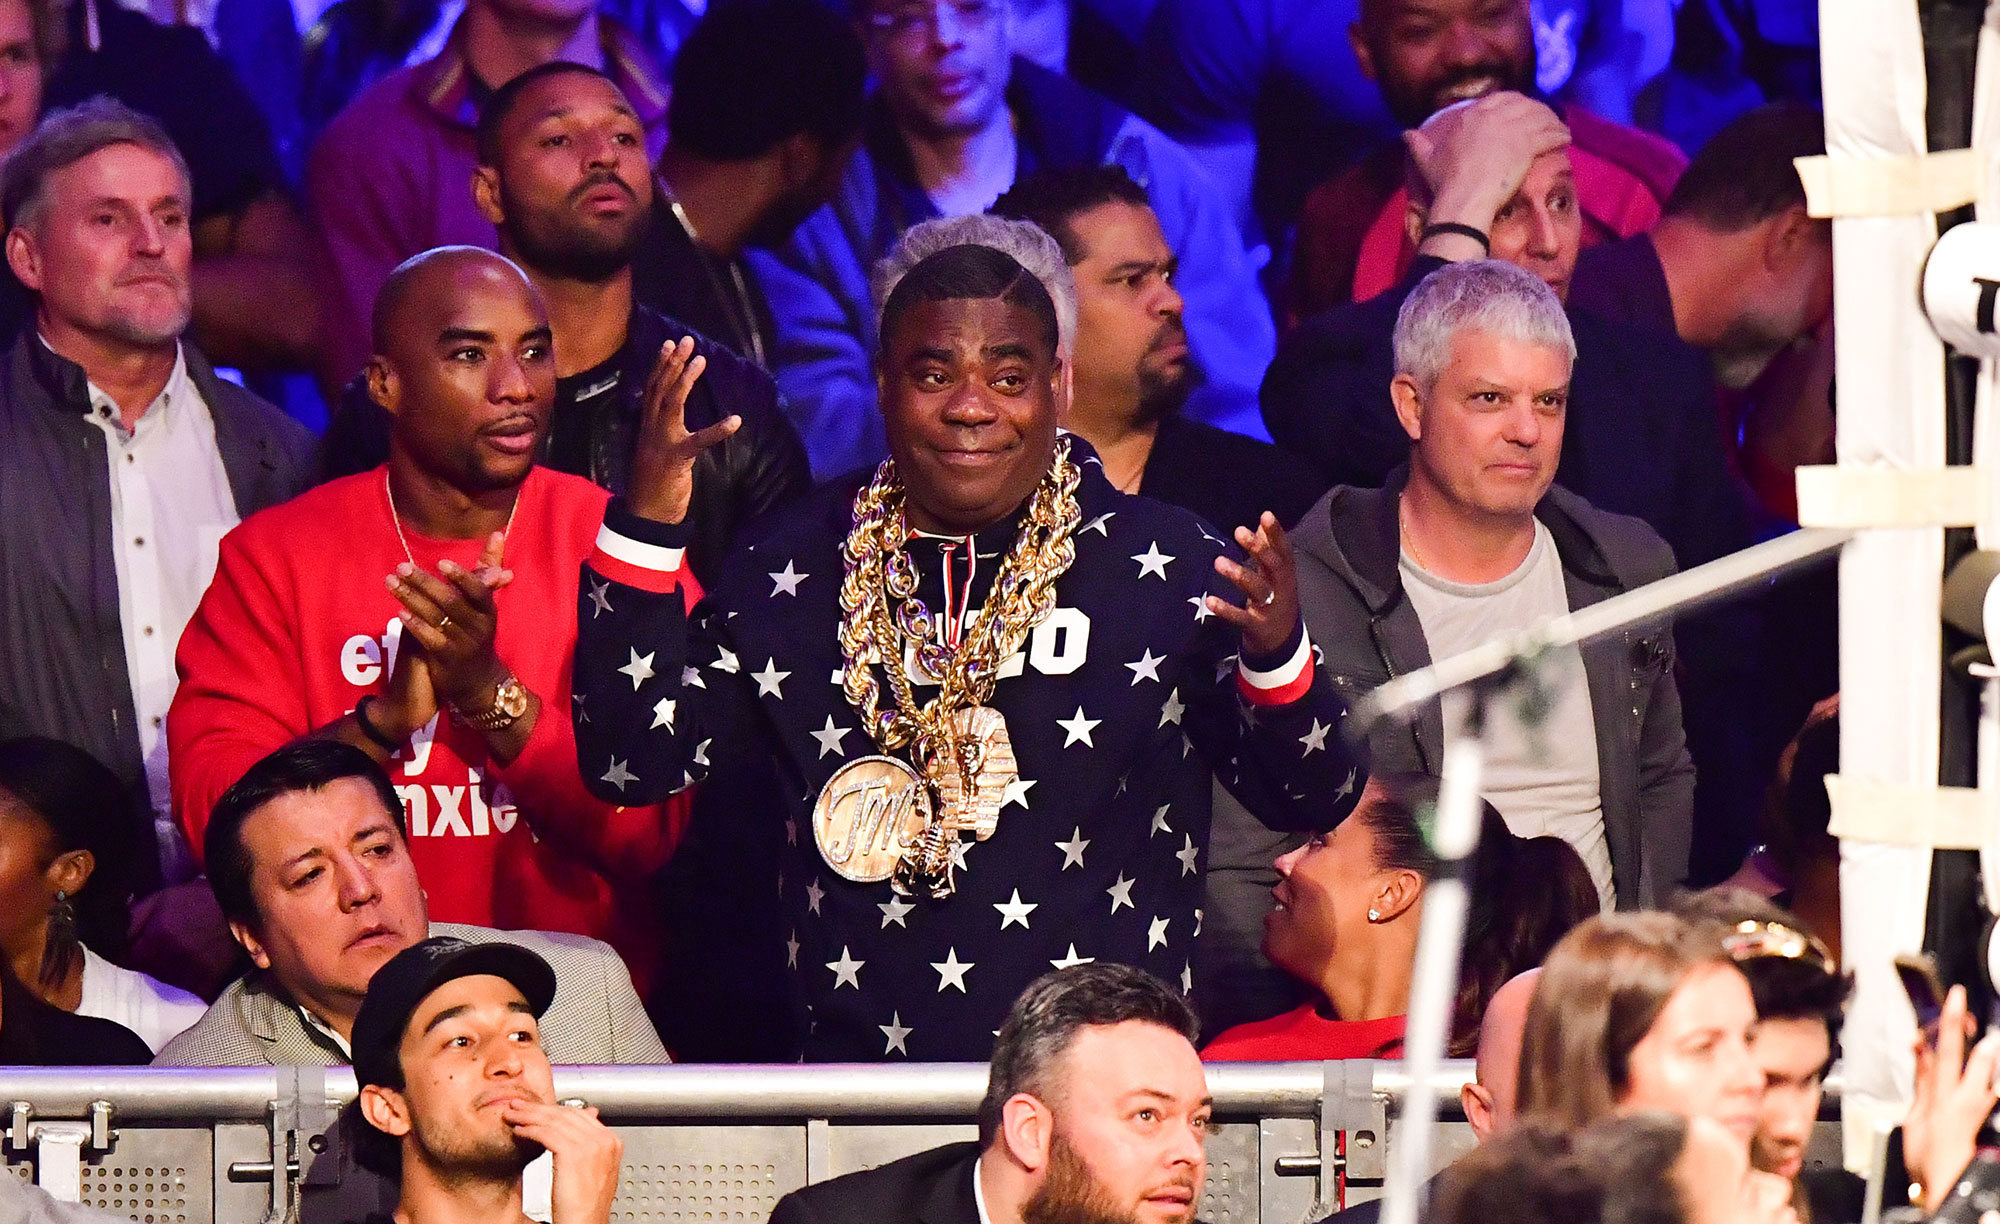 NEW YORK, NY - APRIL 20: Charlamagne tha God and Tracy Morgan attend WBO welterweight title fight between Terence Crawford and Amir Khan at Madison Square Garden on April 20, 2019 in New York City.